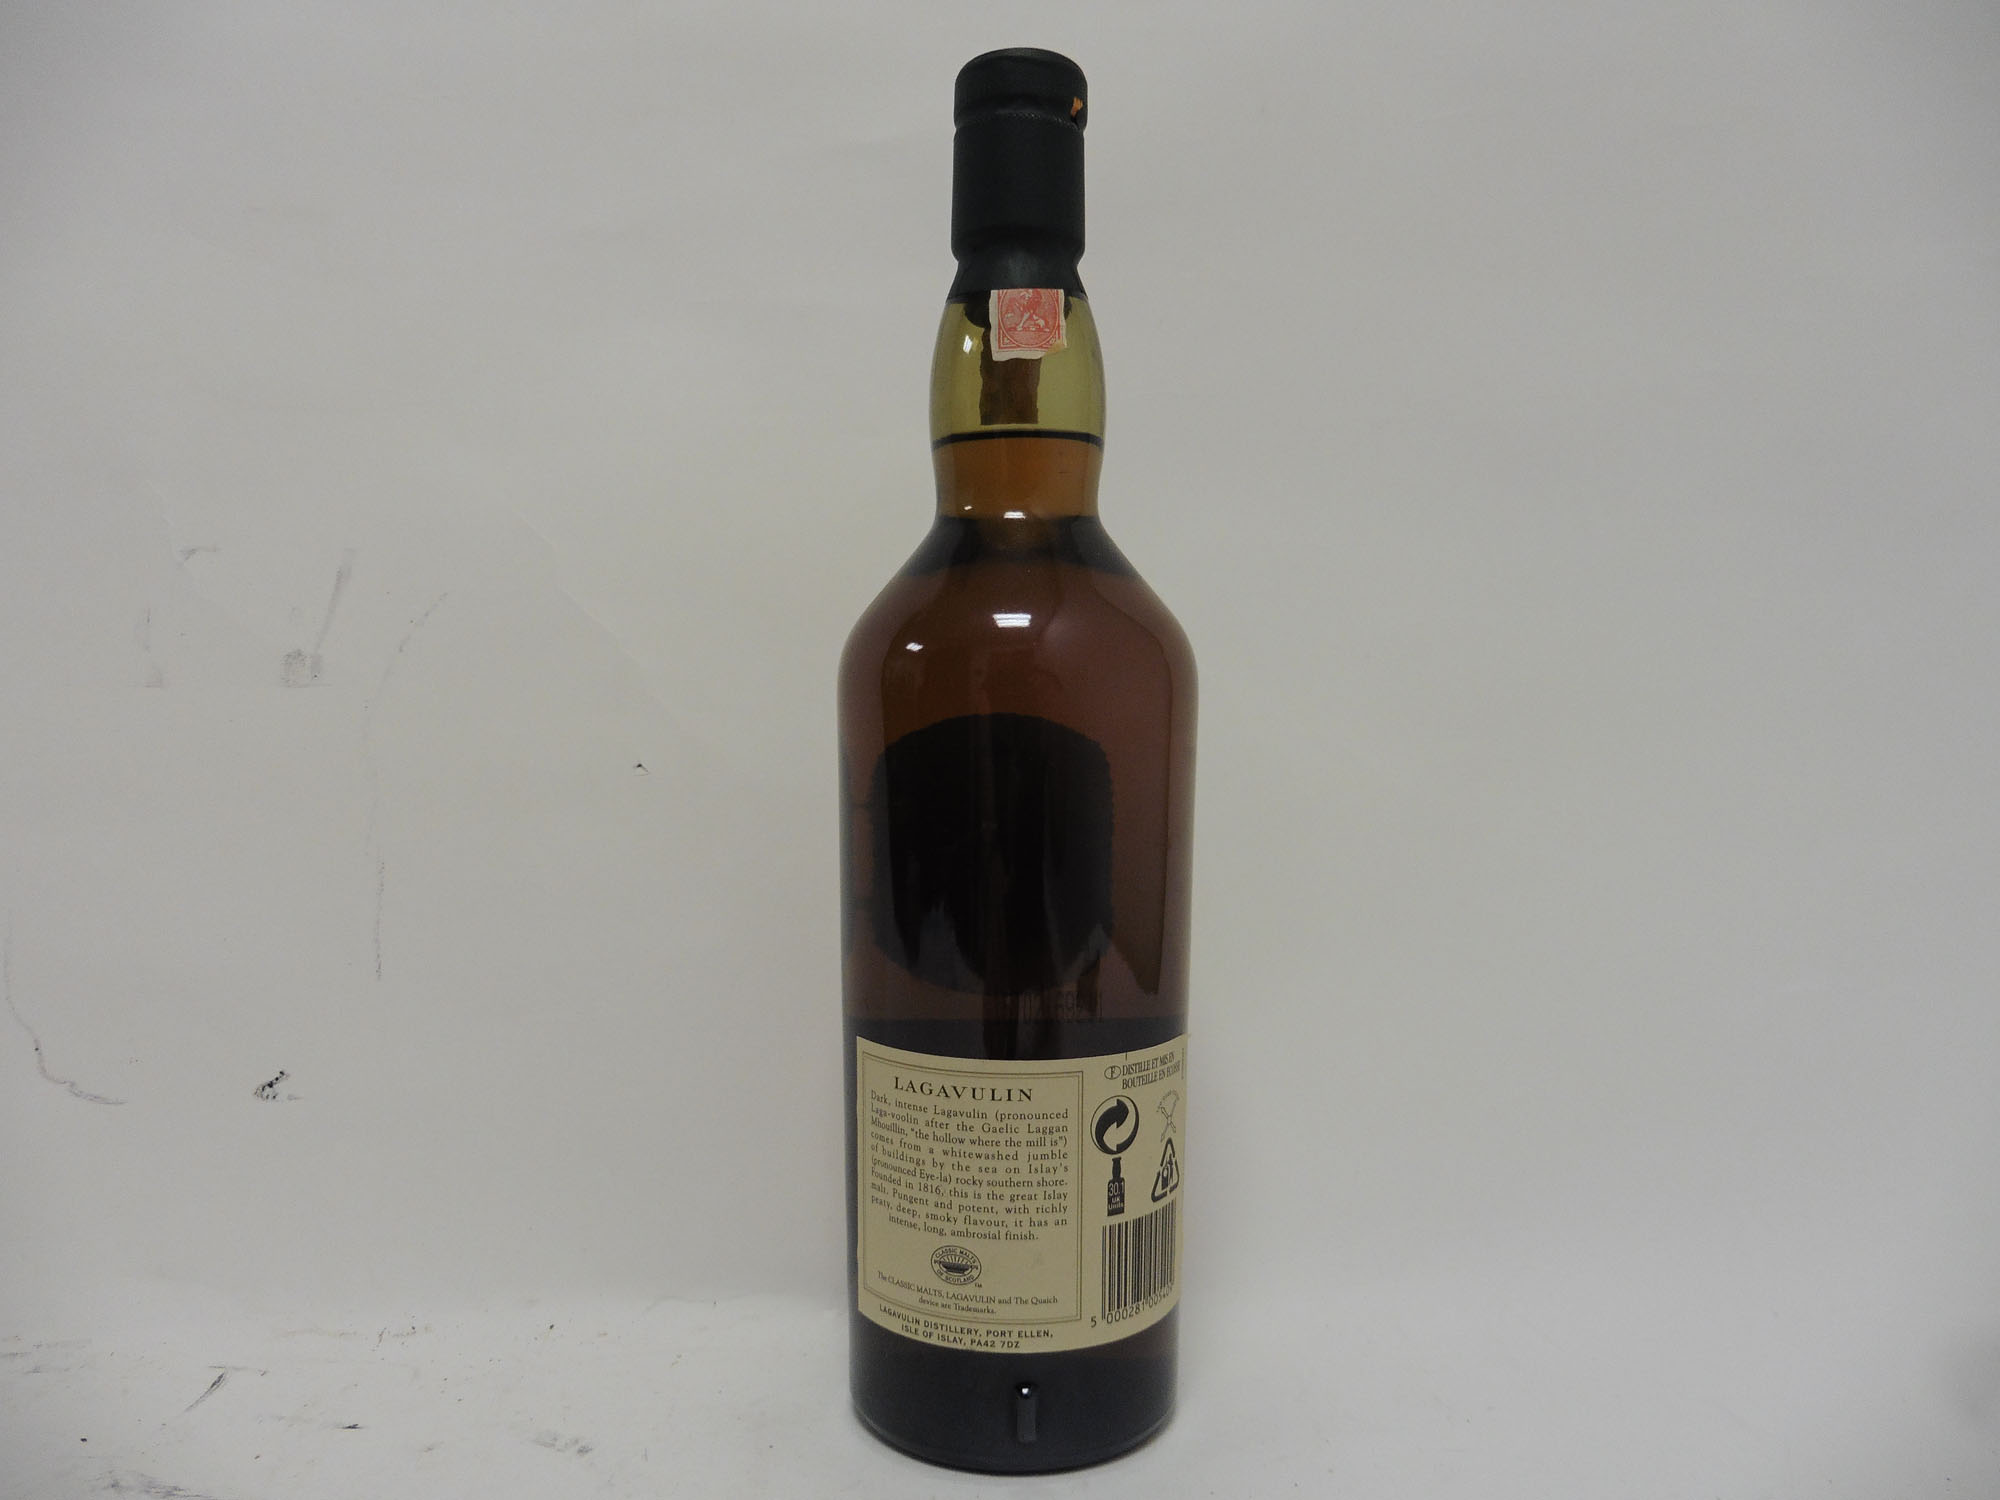 A bottle of Lagavulin 16 year old Single Islay Malt Scotch Whisky 70cl 43% - Image 2 of 2